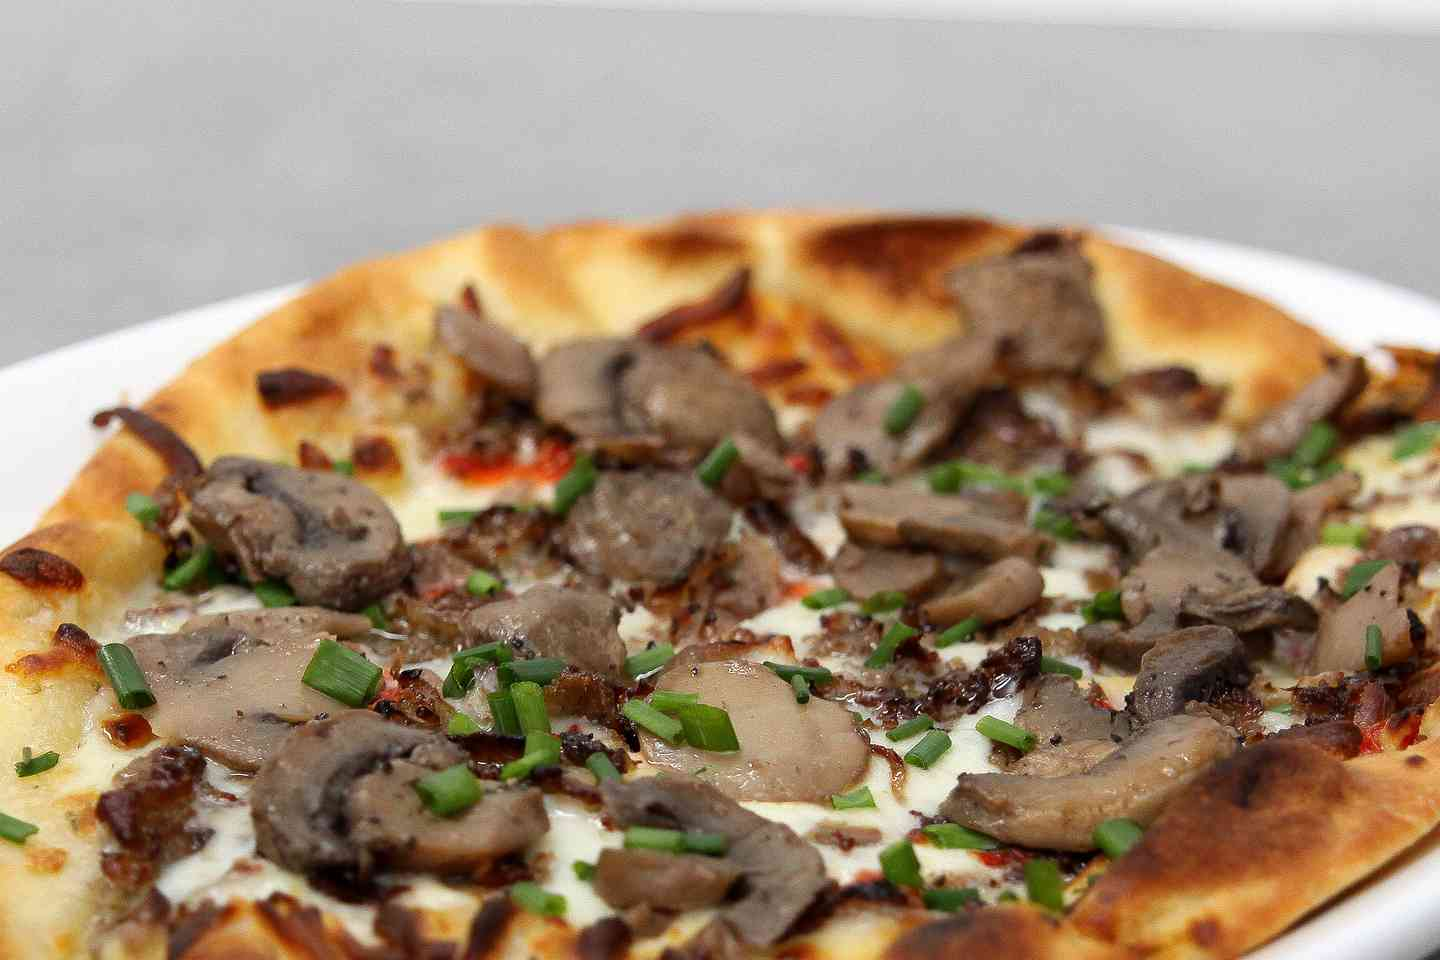 PHILLY CHEESESTEAK FLATBREAD PIZZA